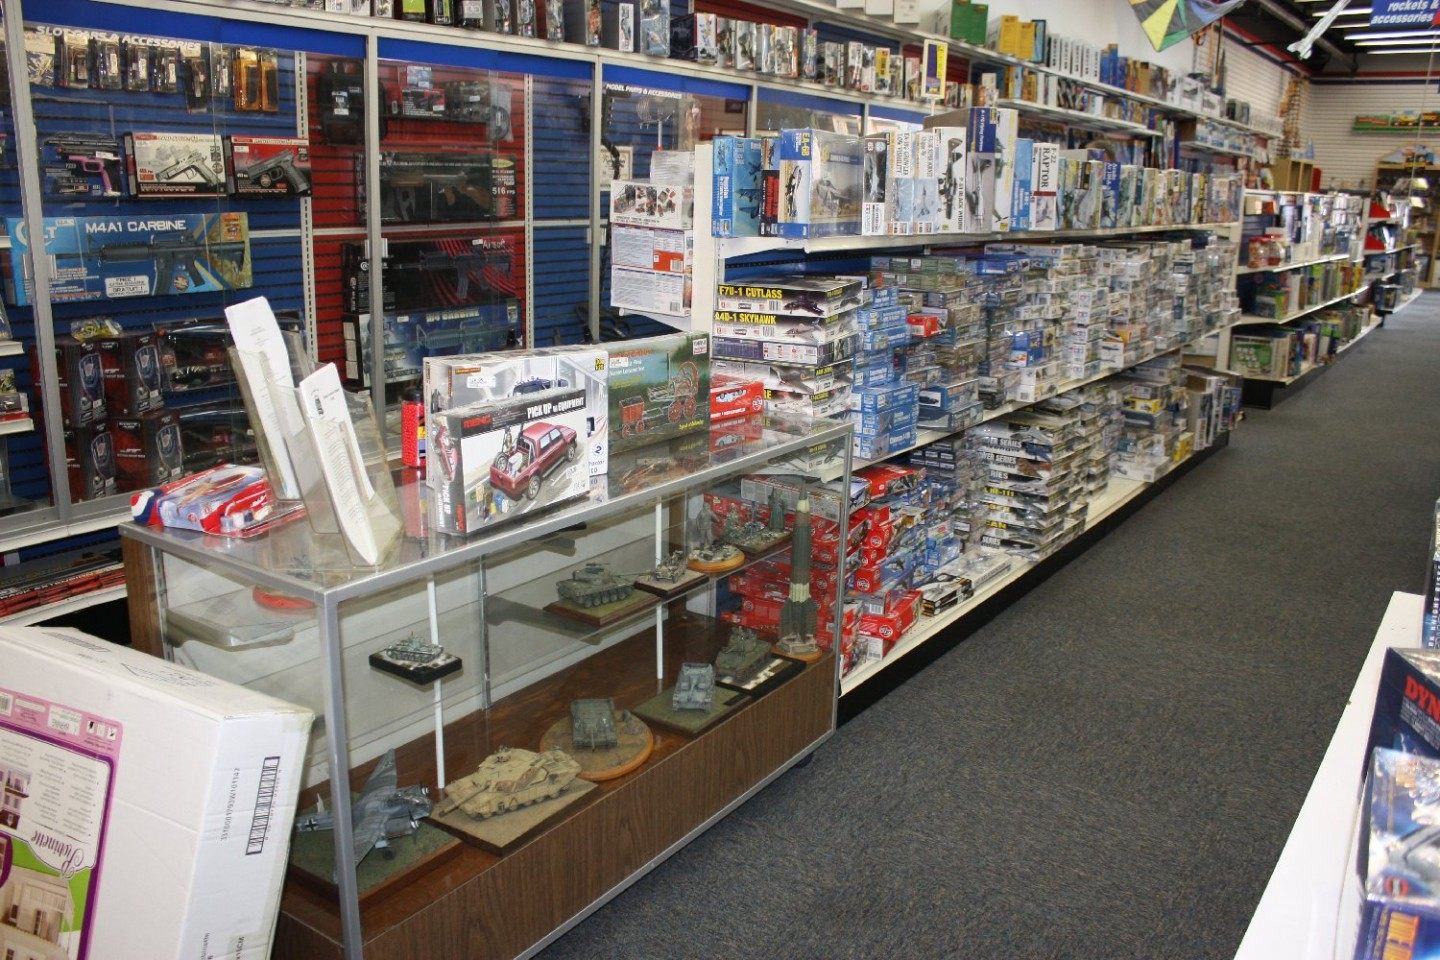 HTUSA_model kit aisle looking fwd